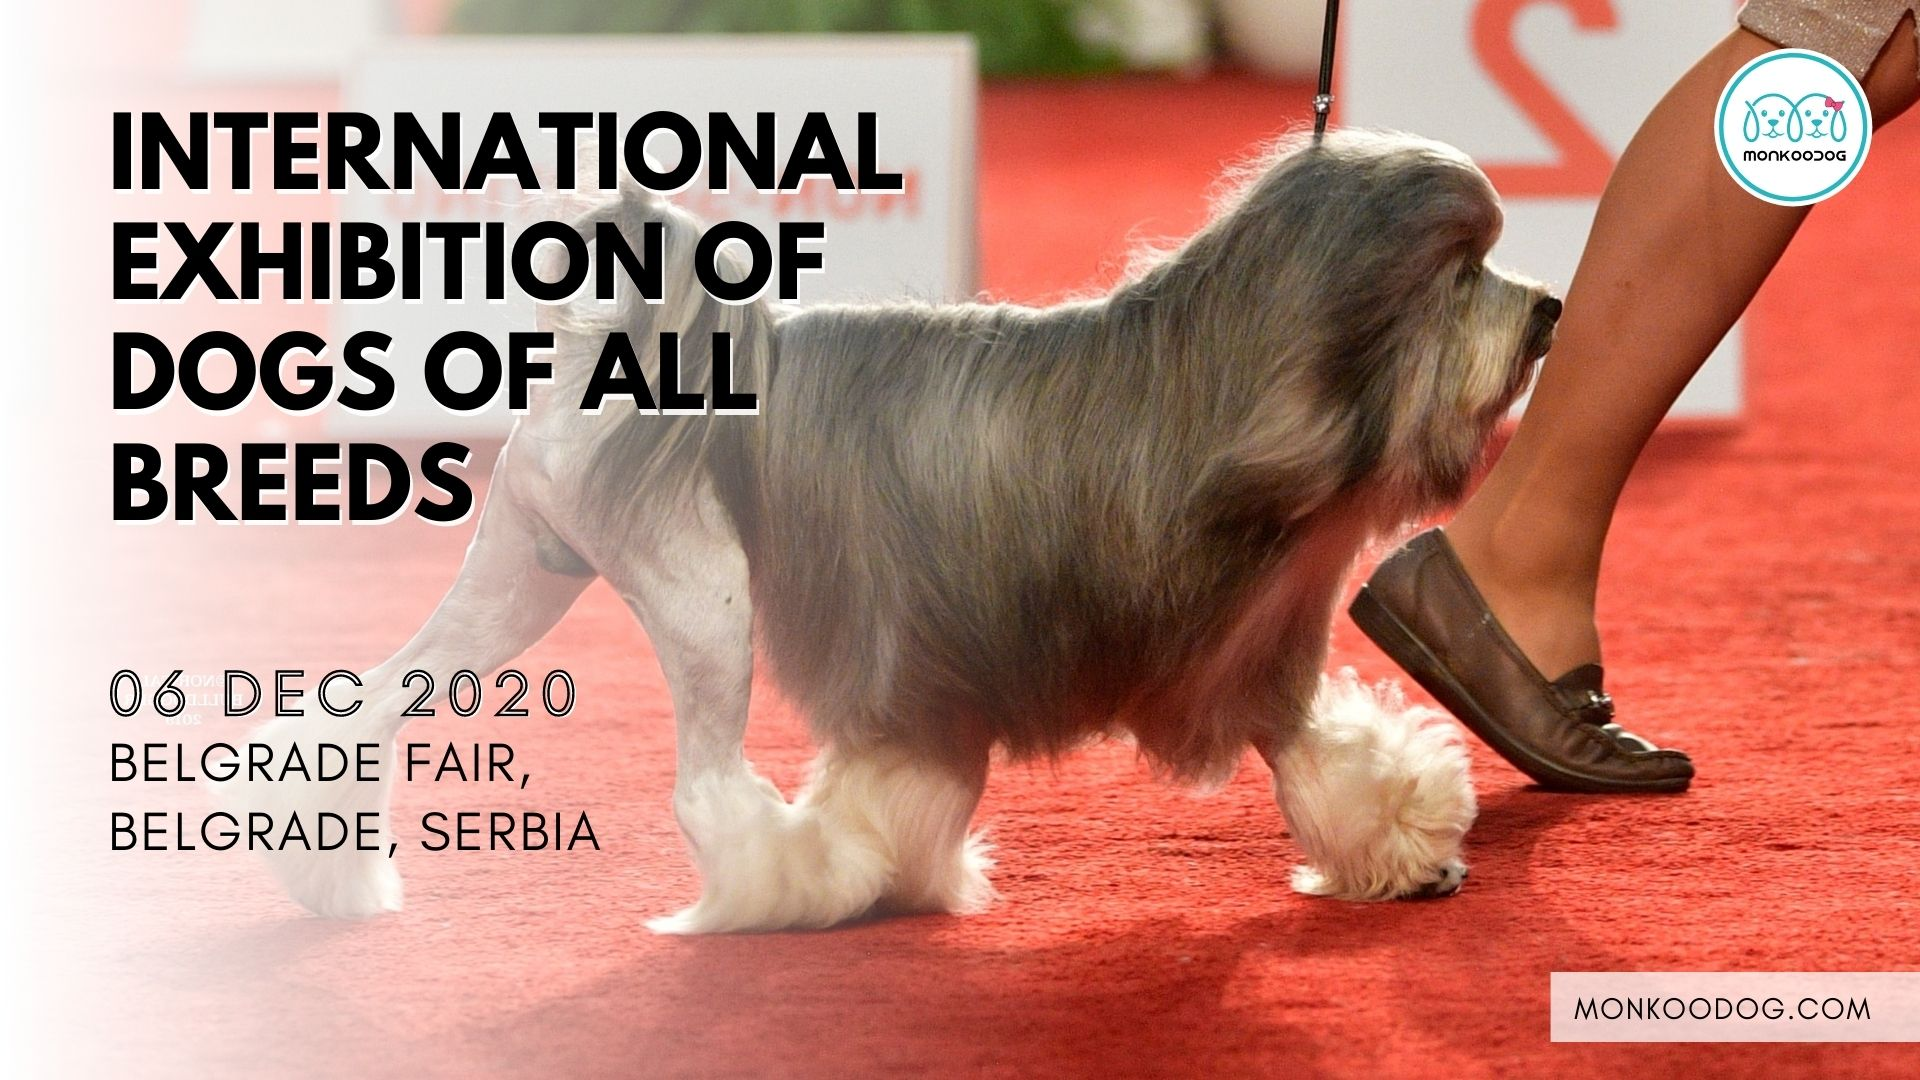 International Exhibition of Dogs of All Breeds dog event